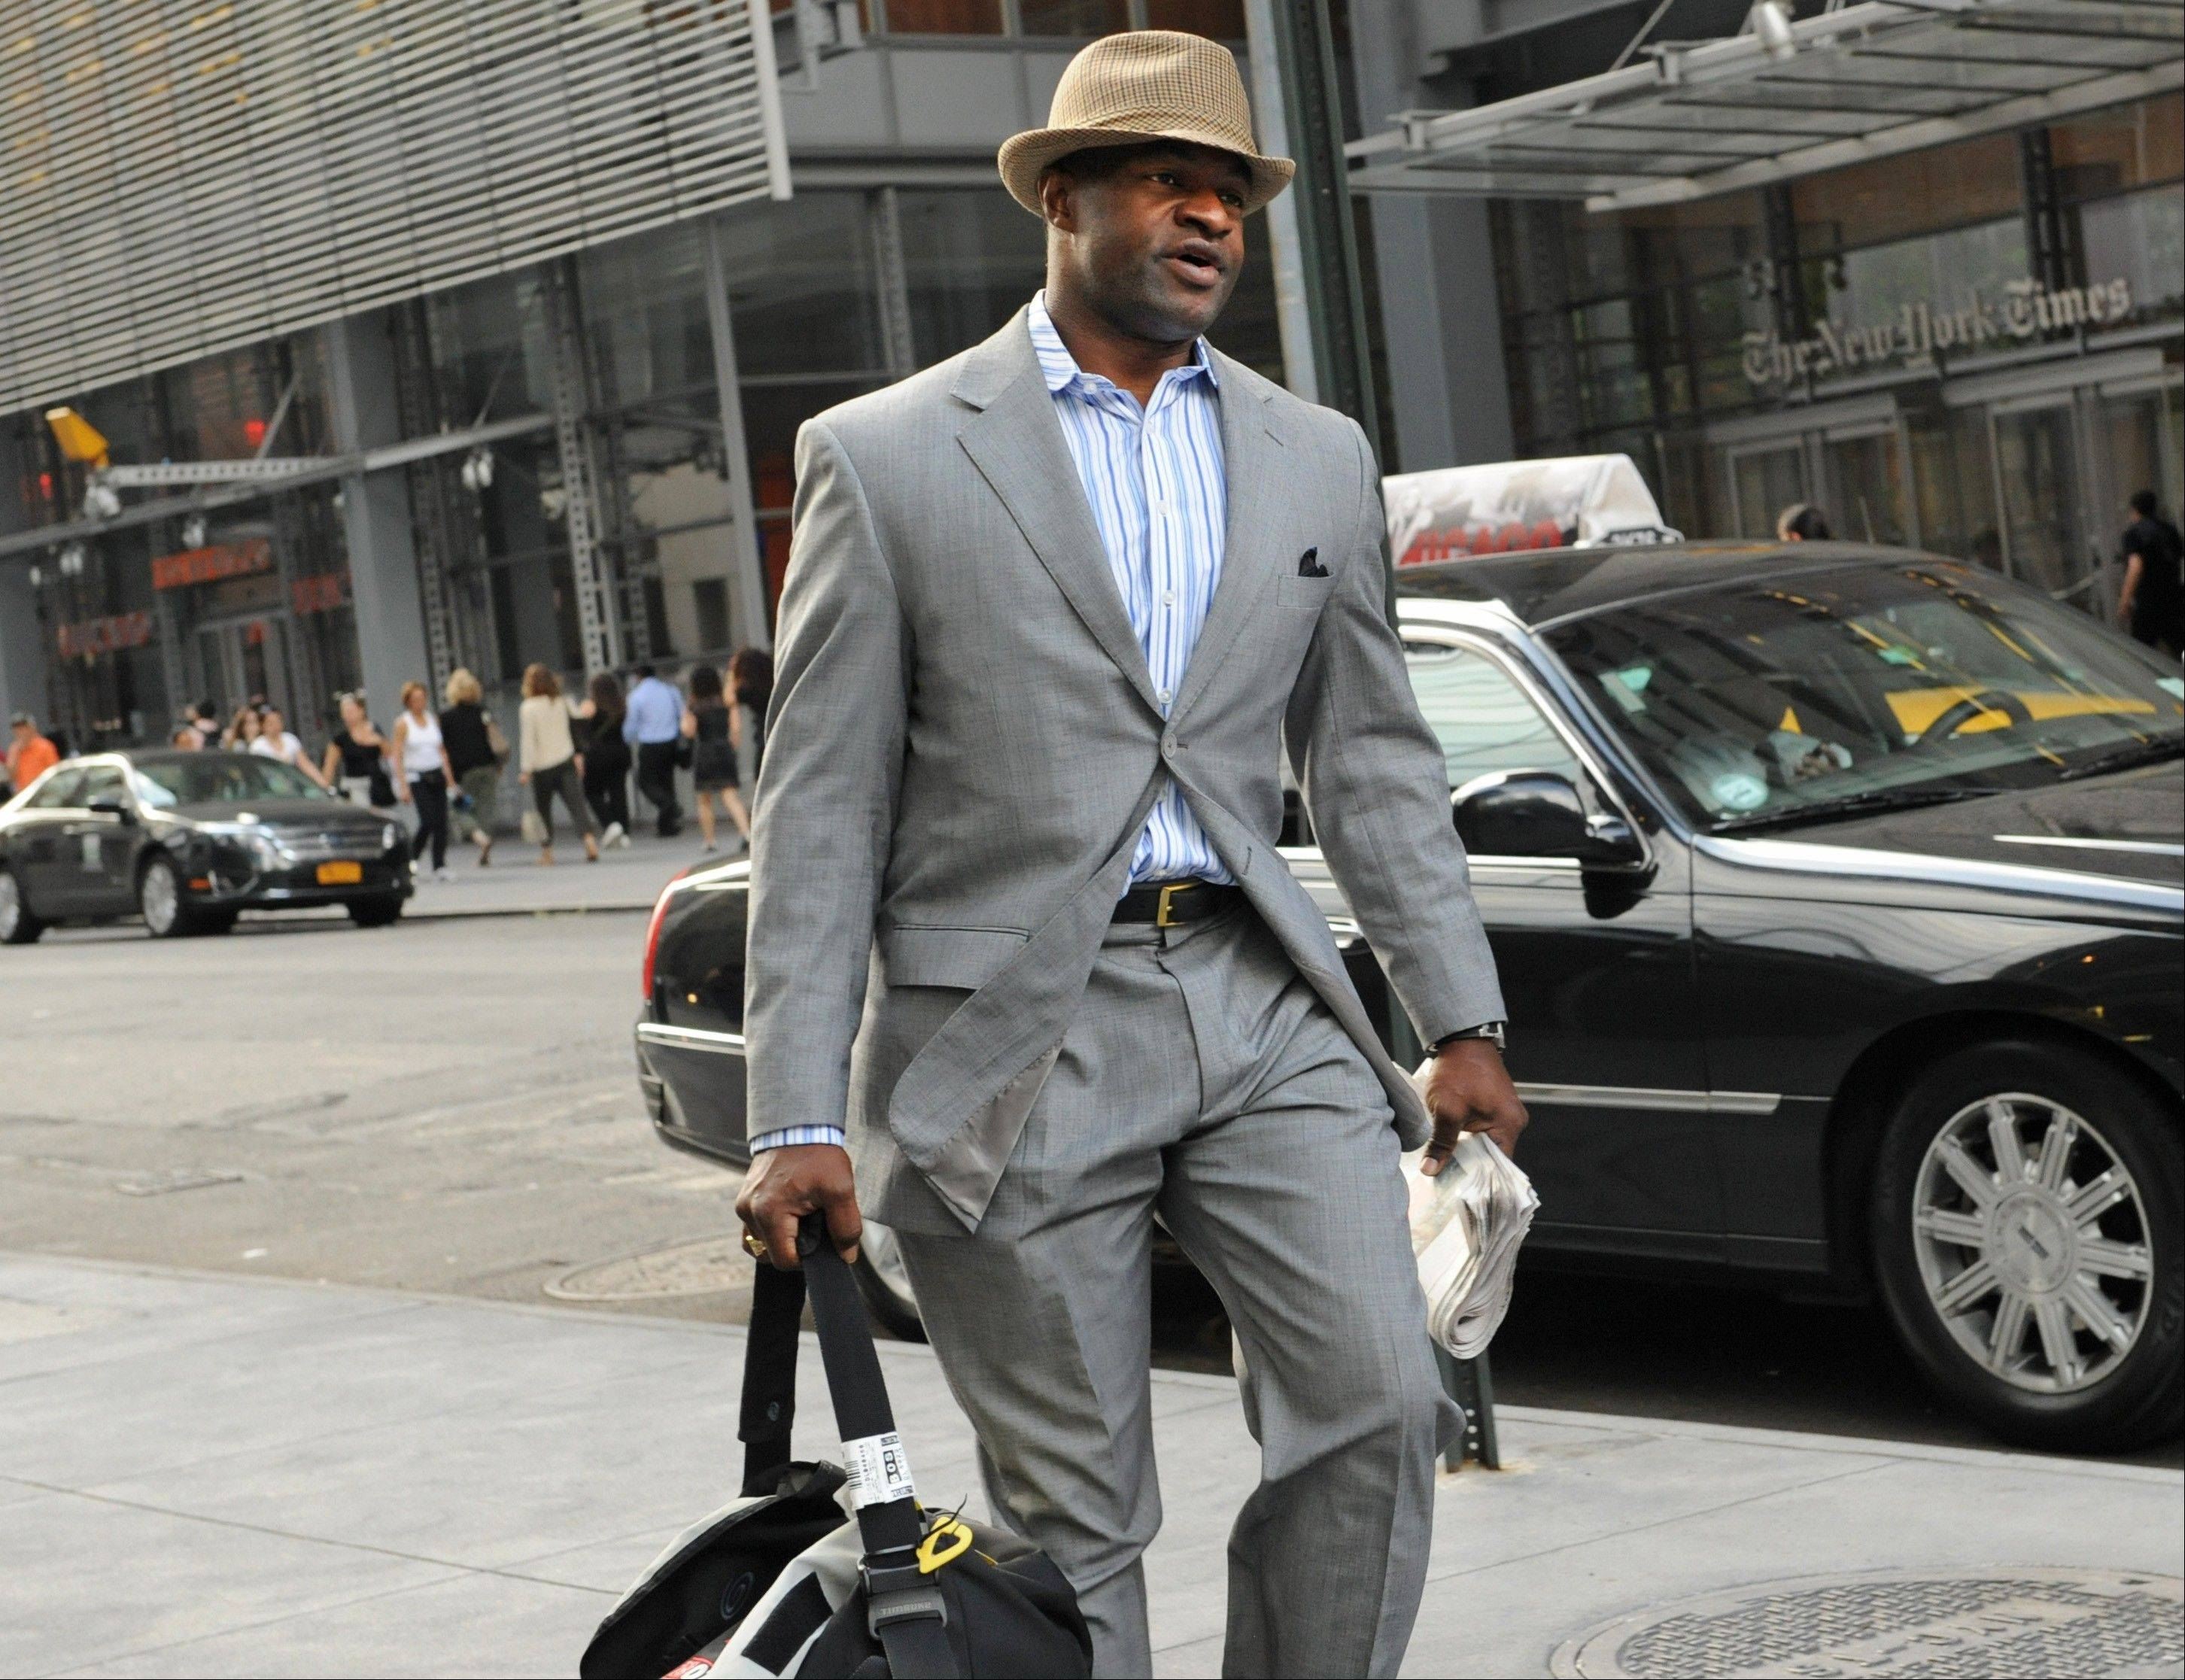 NFL Players Association executive director DeMaurice Smith enters a Manhattan law office Wednesday. NFL owners and player representatives arrived for another round of labor talks as the negotiations hit a critical phase.